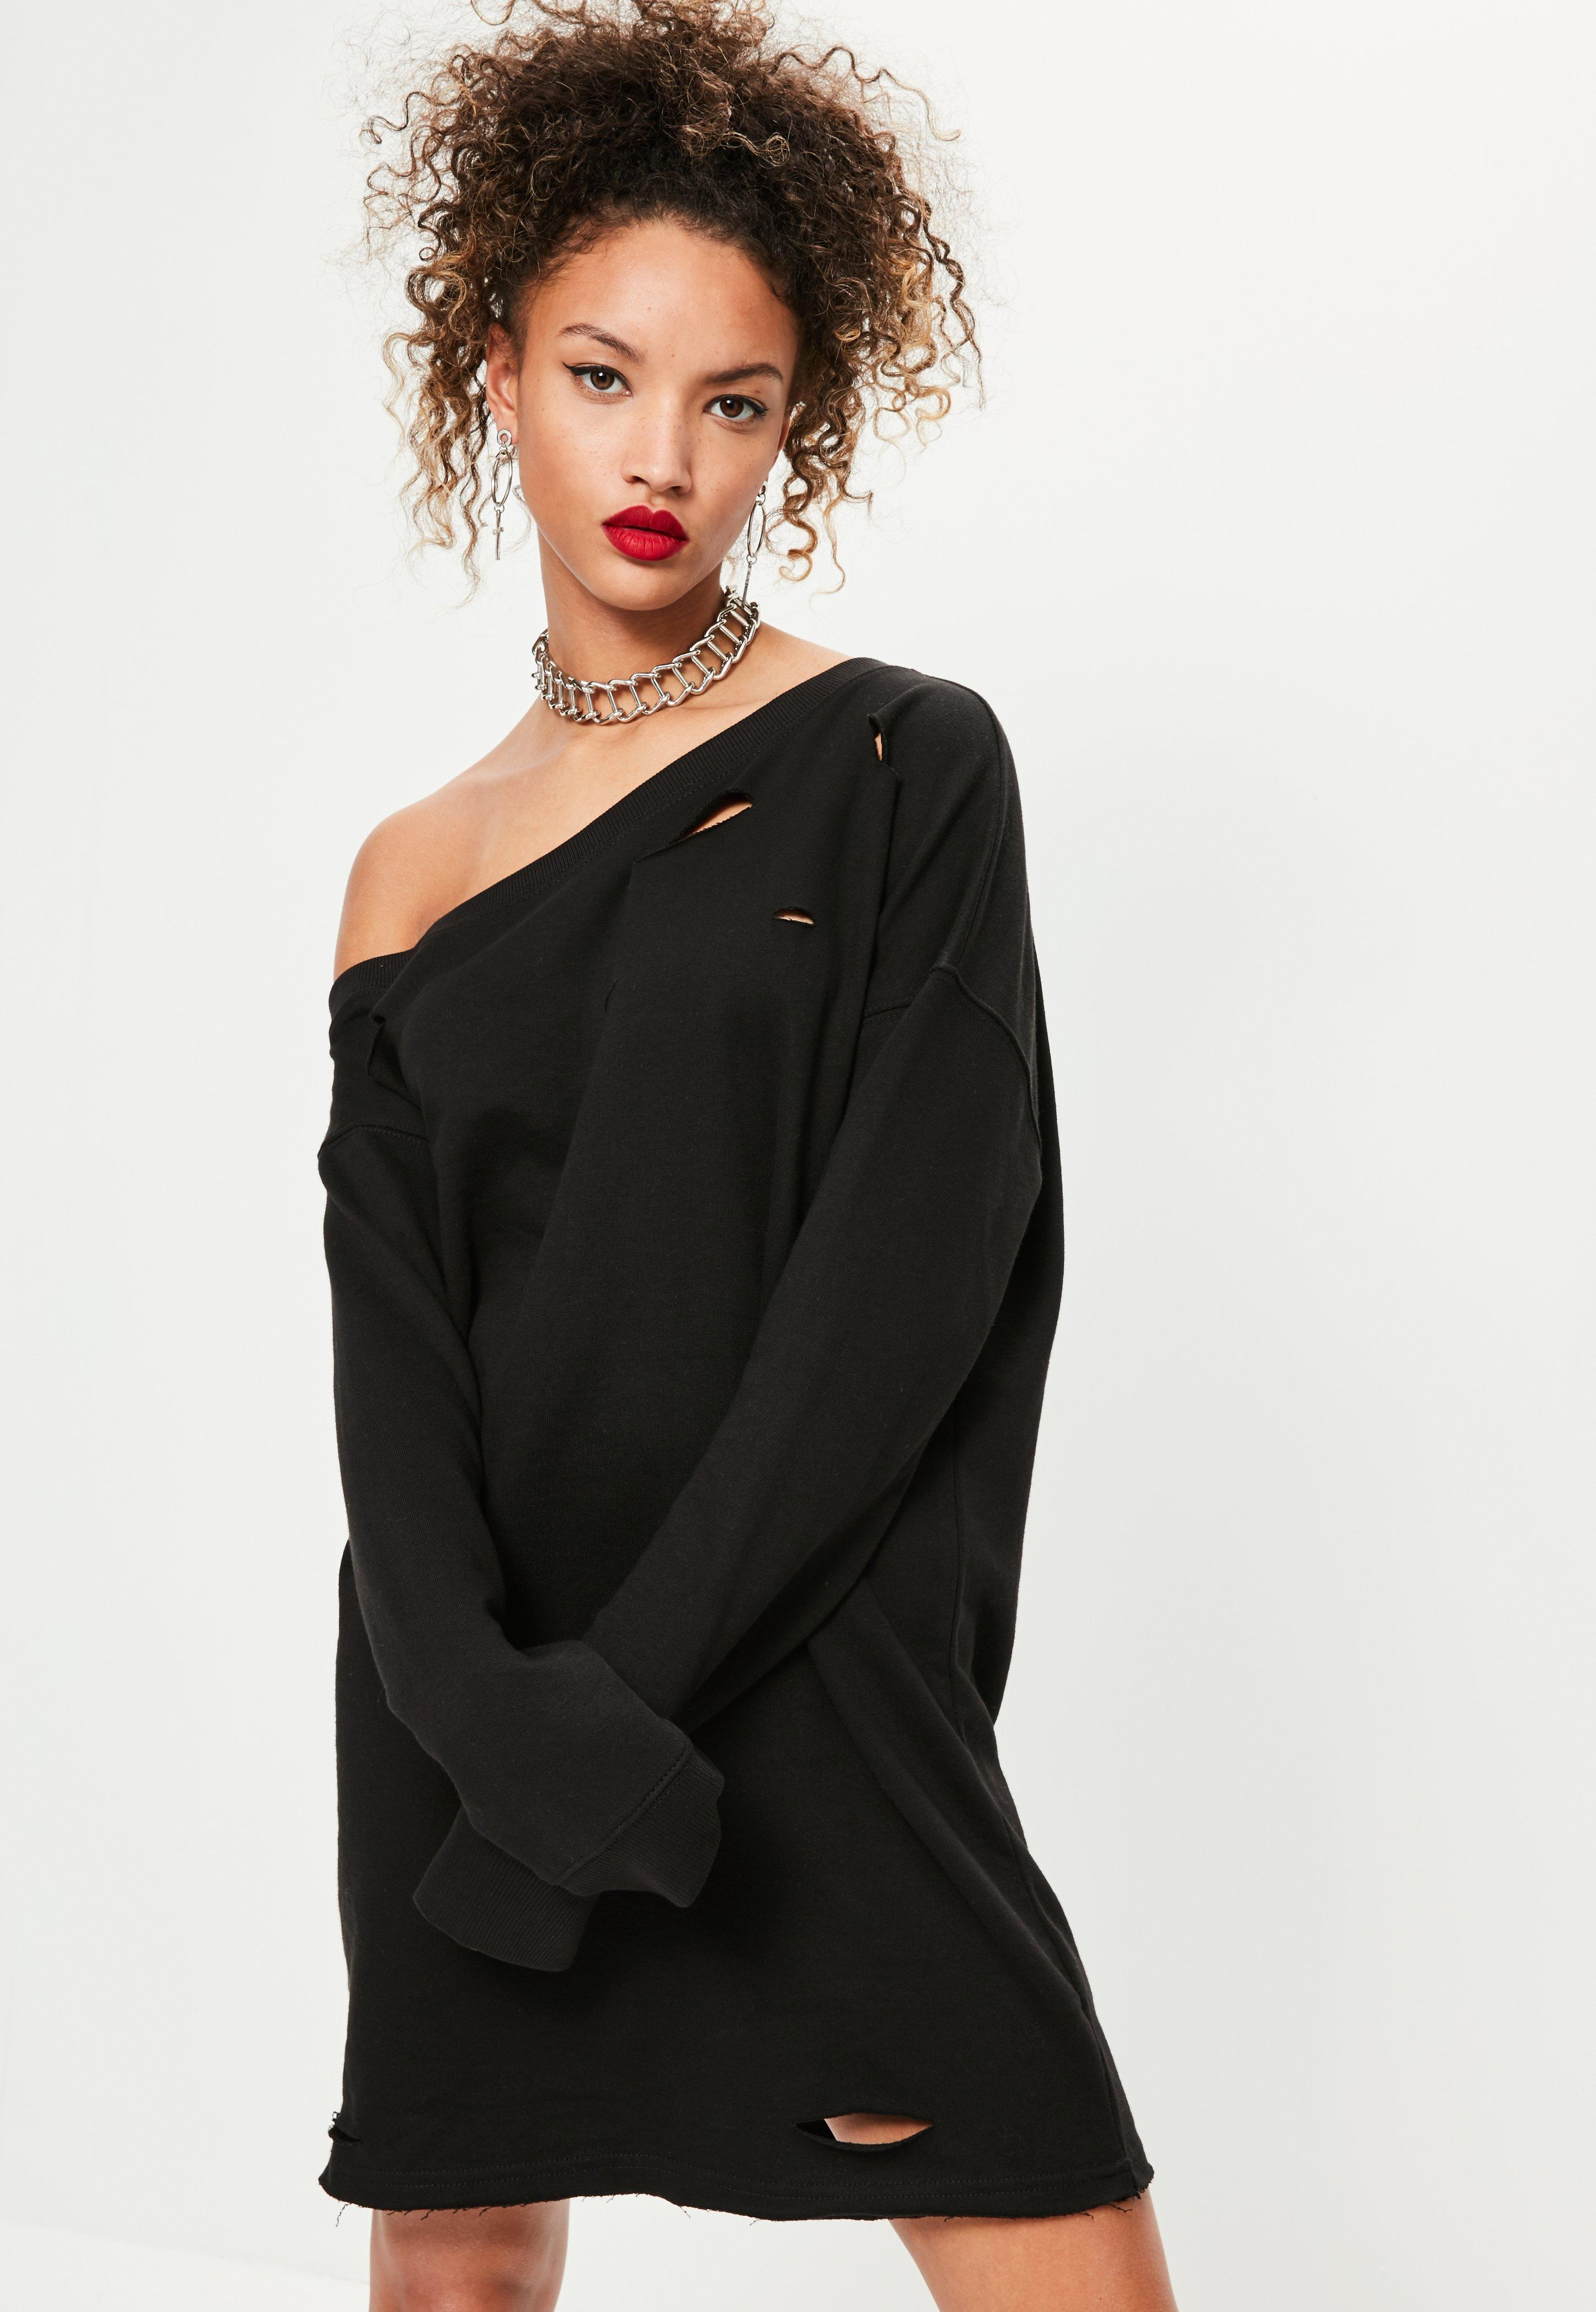 Oversized Dresses - Loose Fitting Dresses Online | Missguided